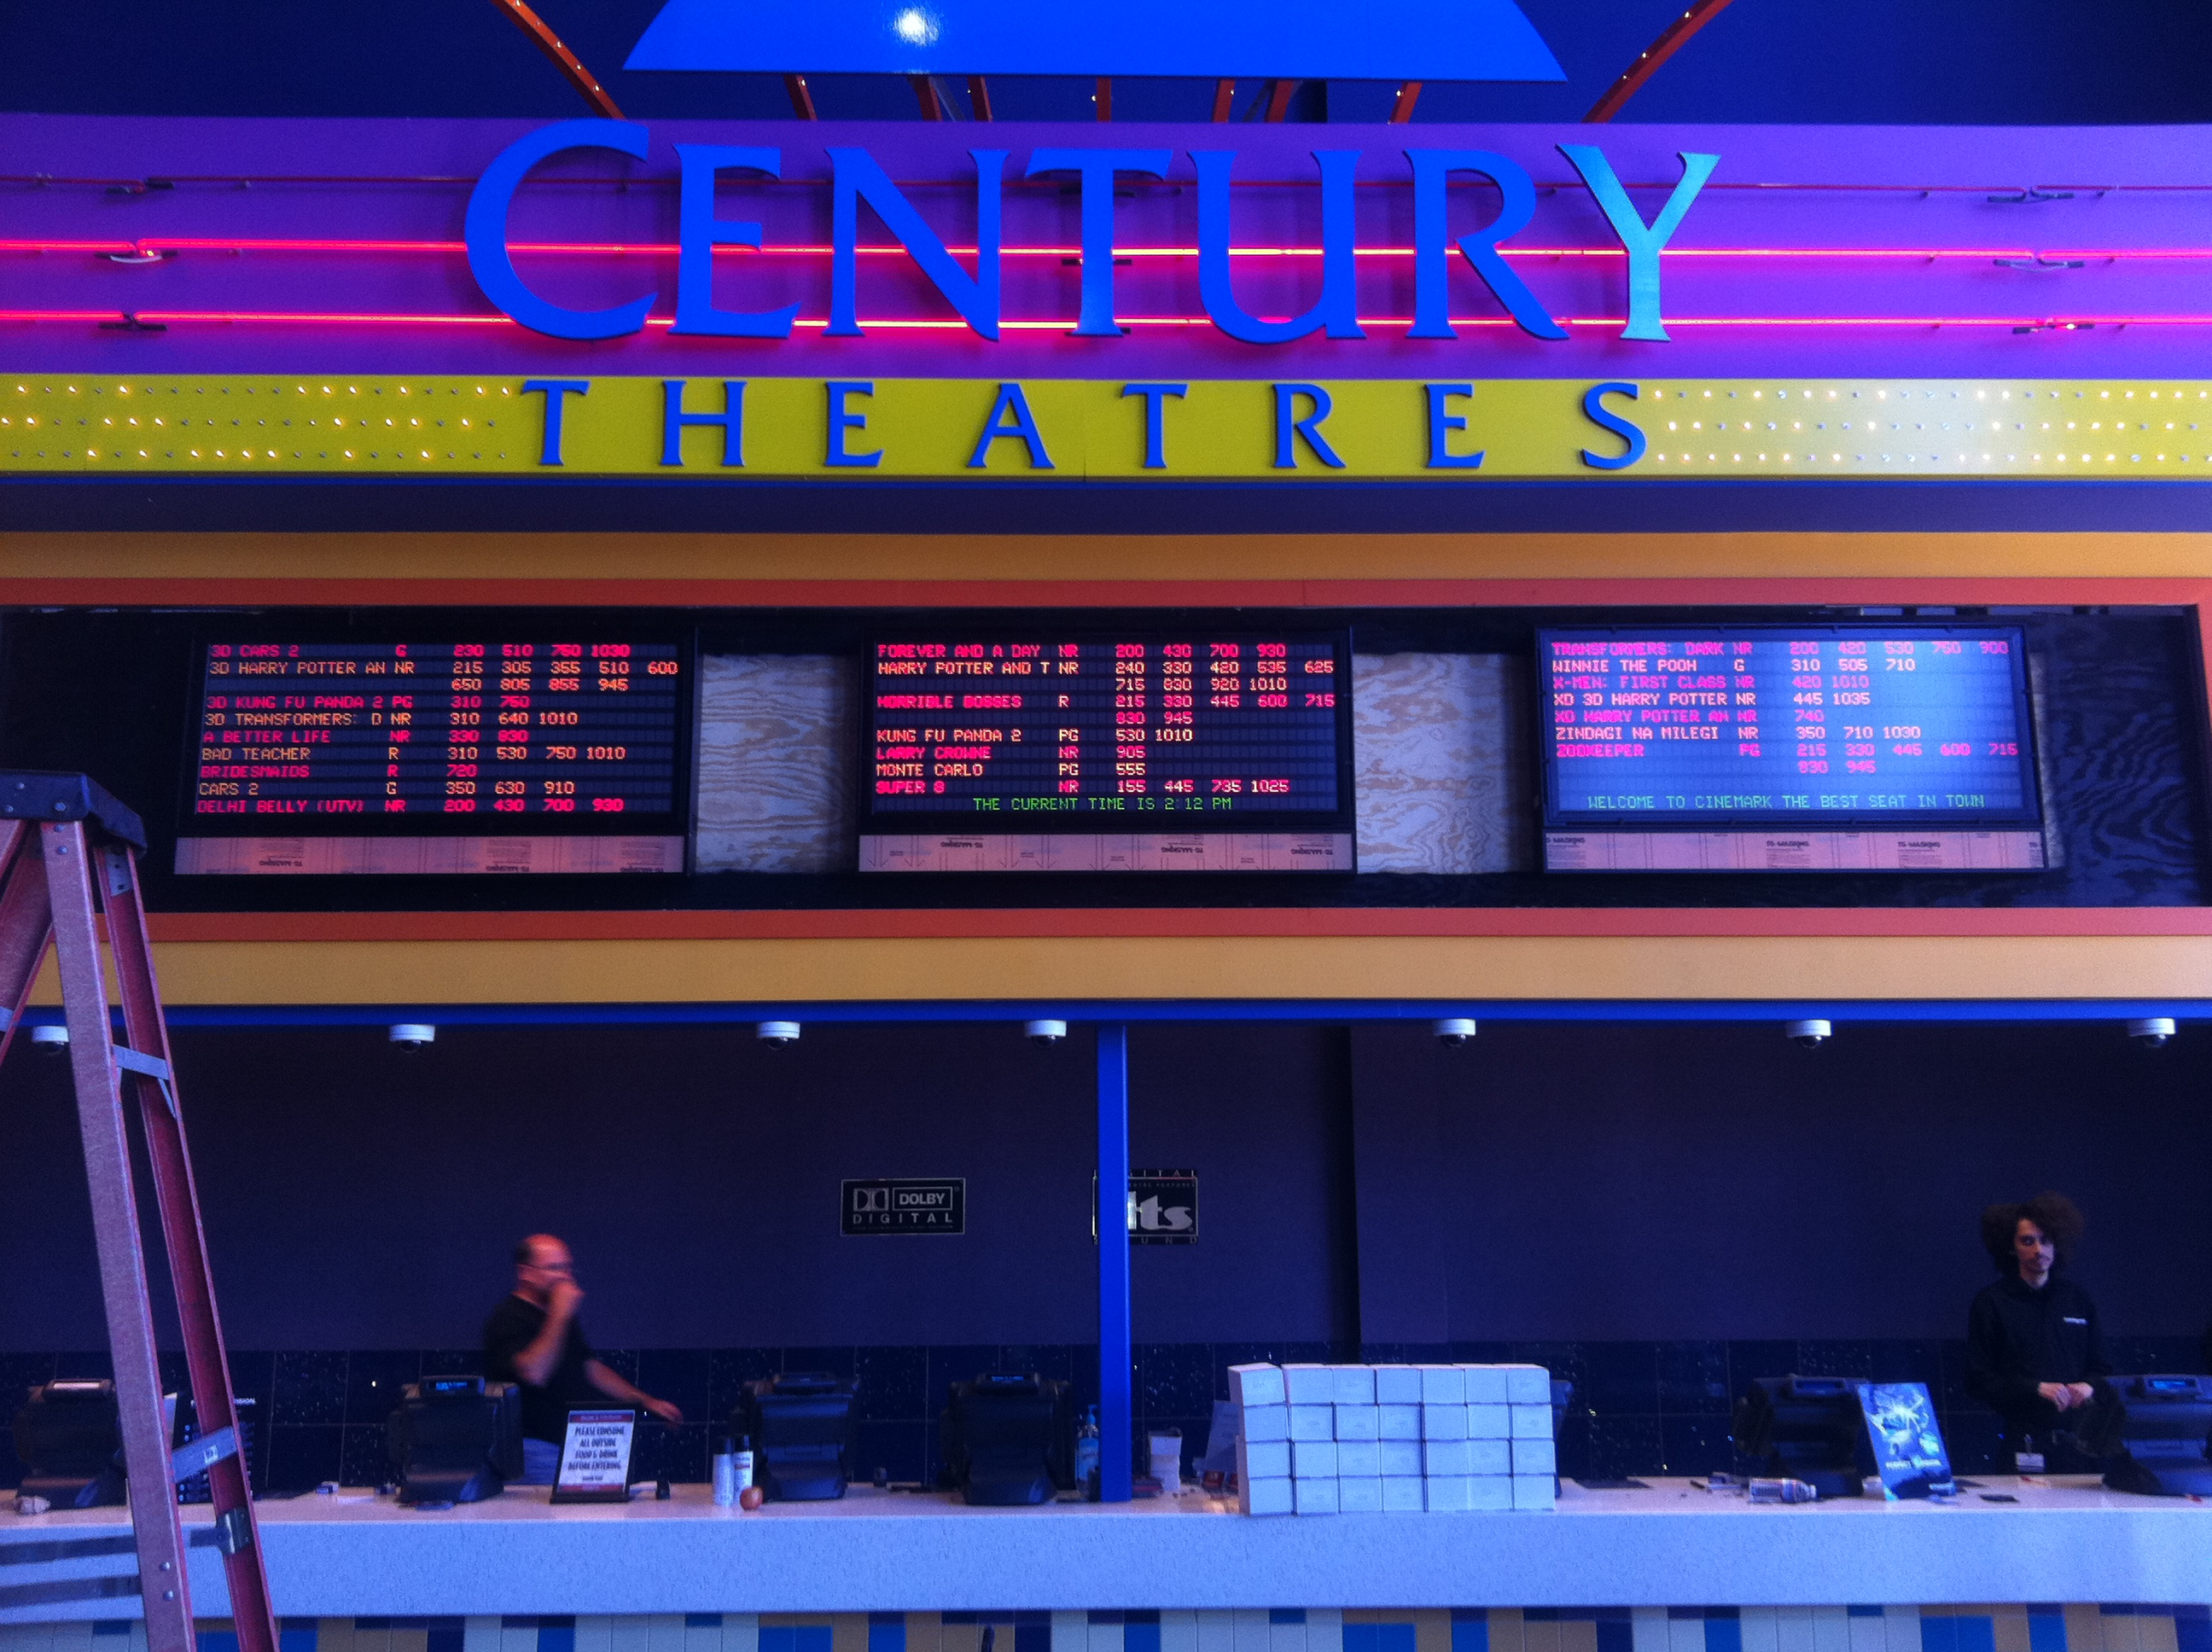 Century 25 Theatres Absolute Electric